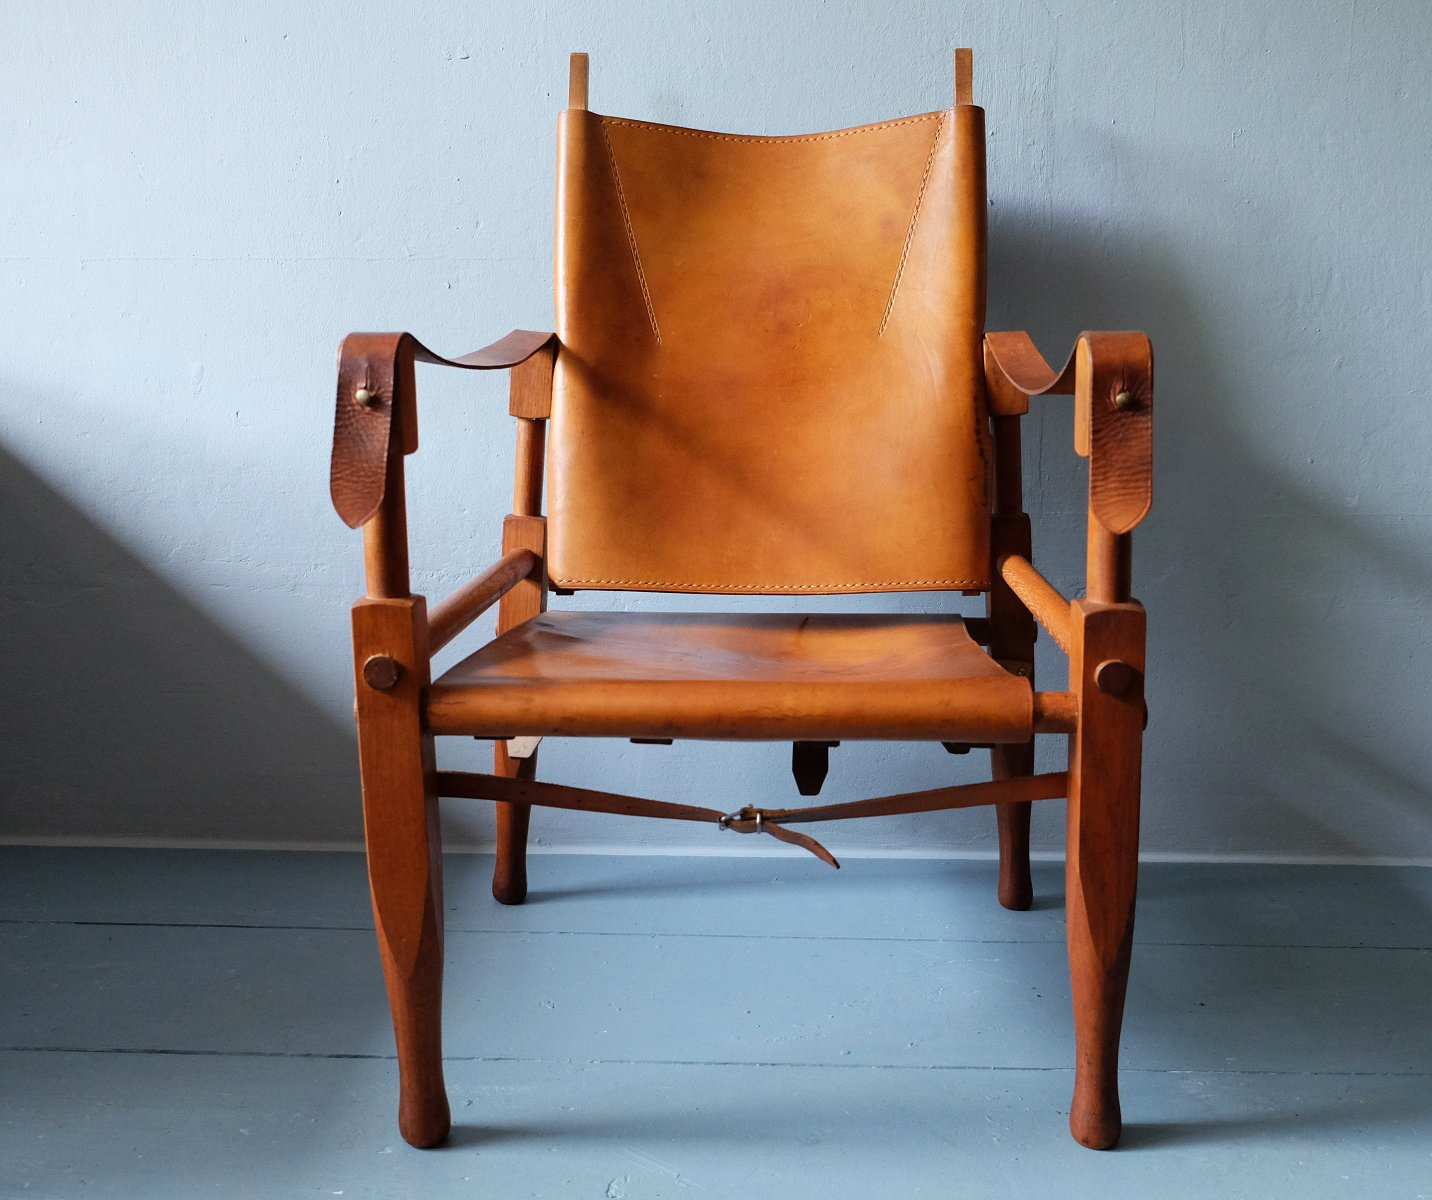 leather safari chair office support for upper back pain and ash by wilhelm kienzle 1950s